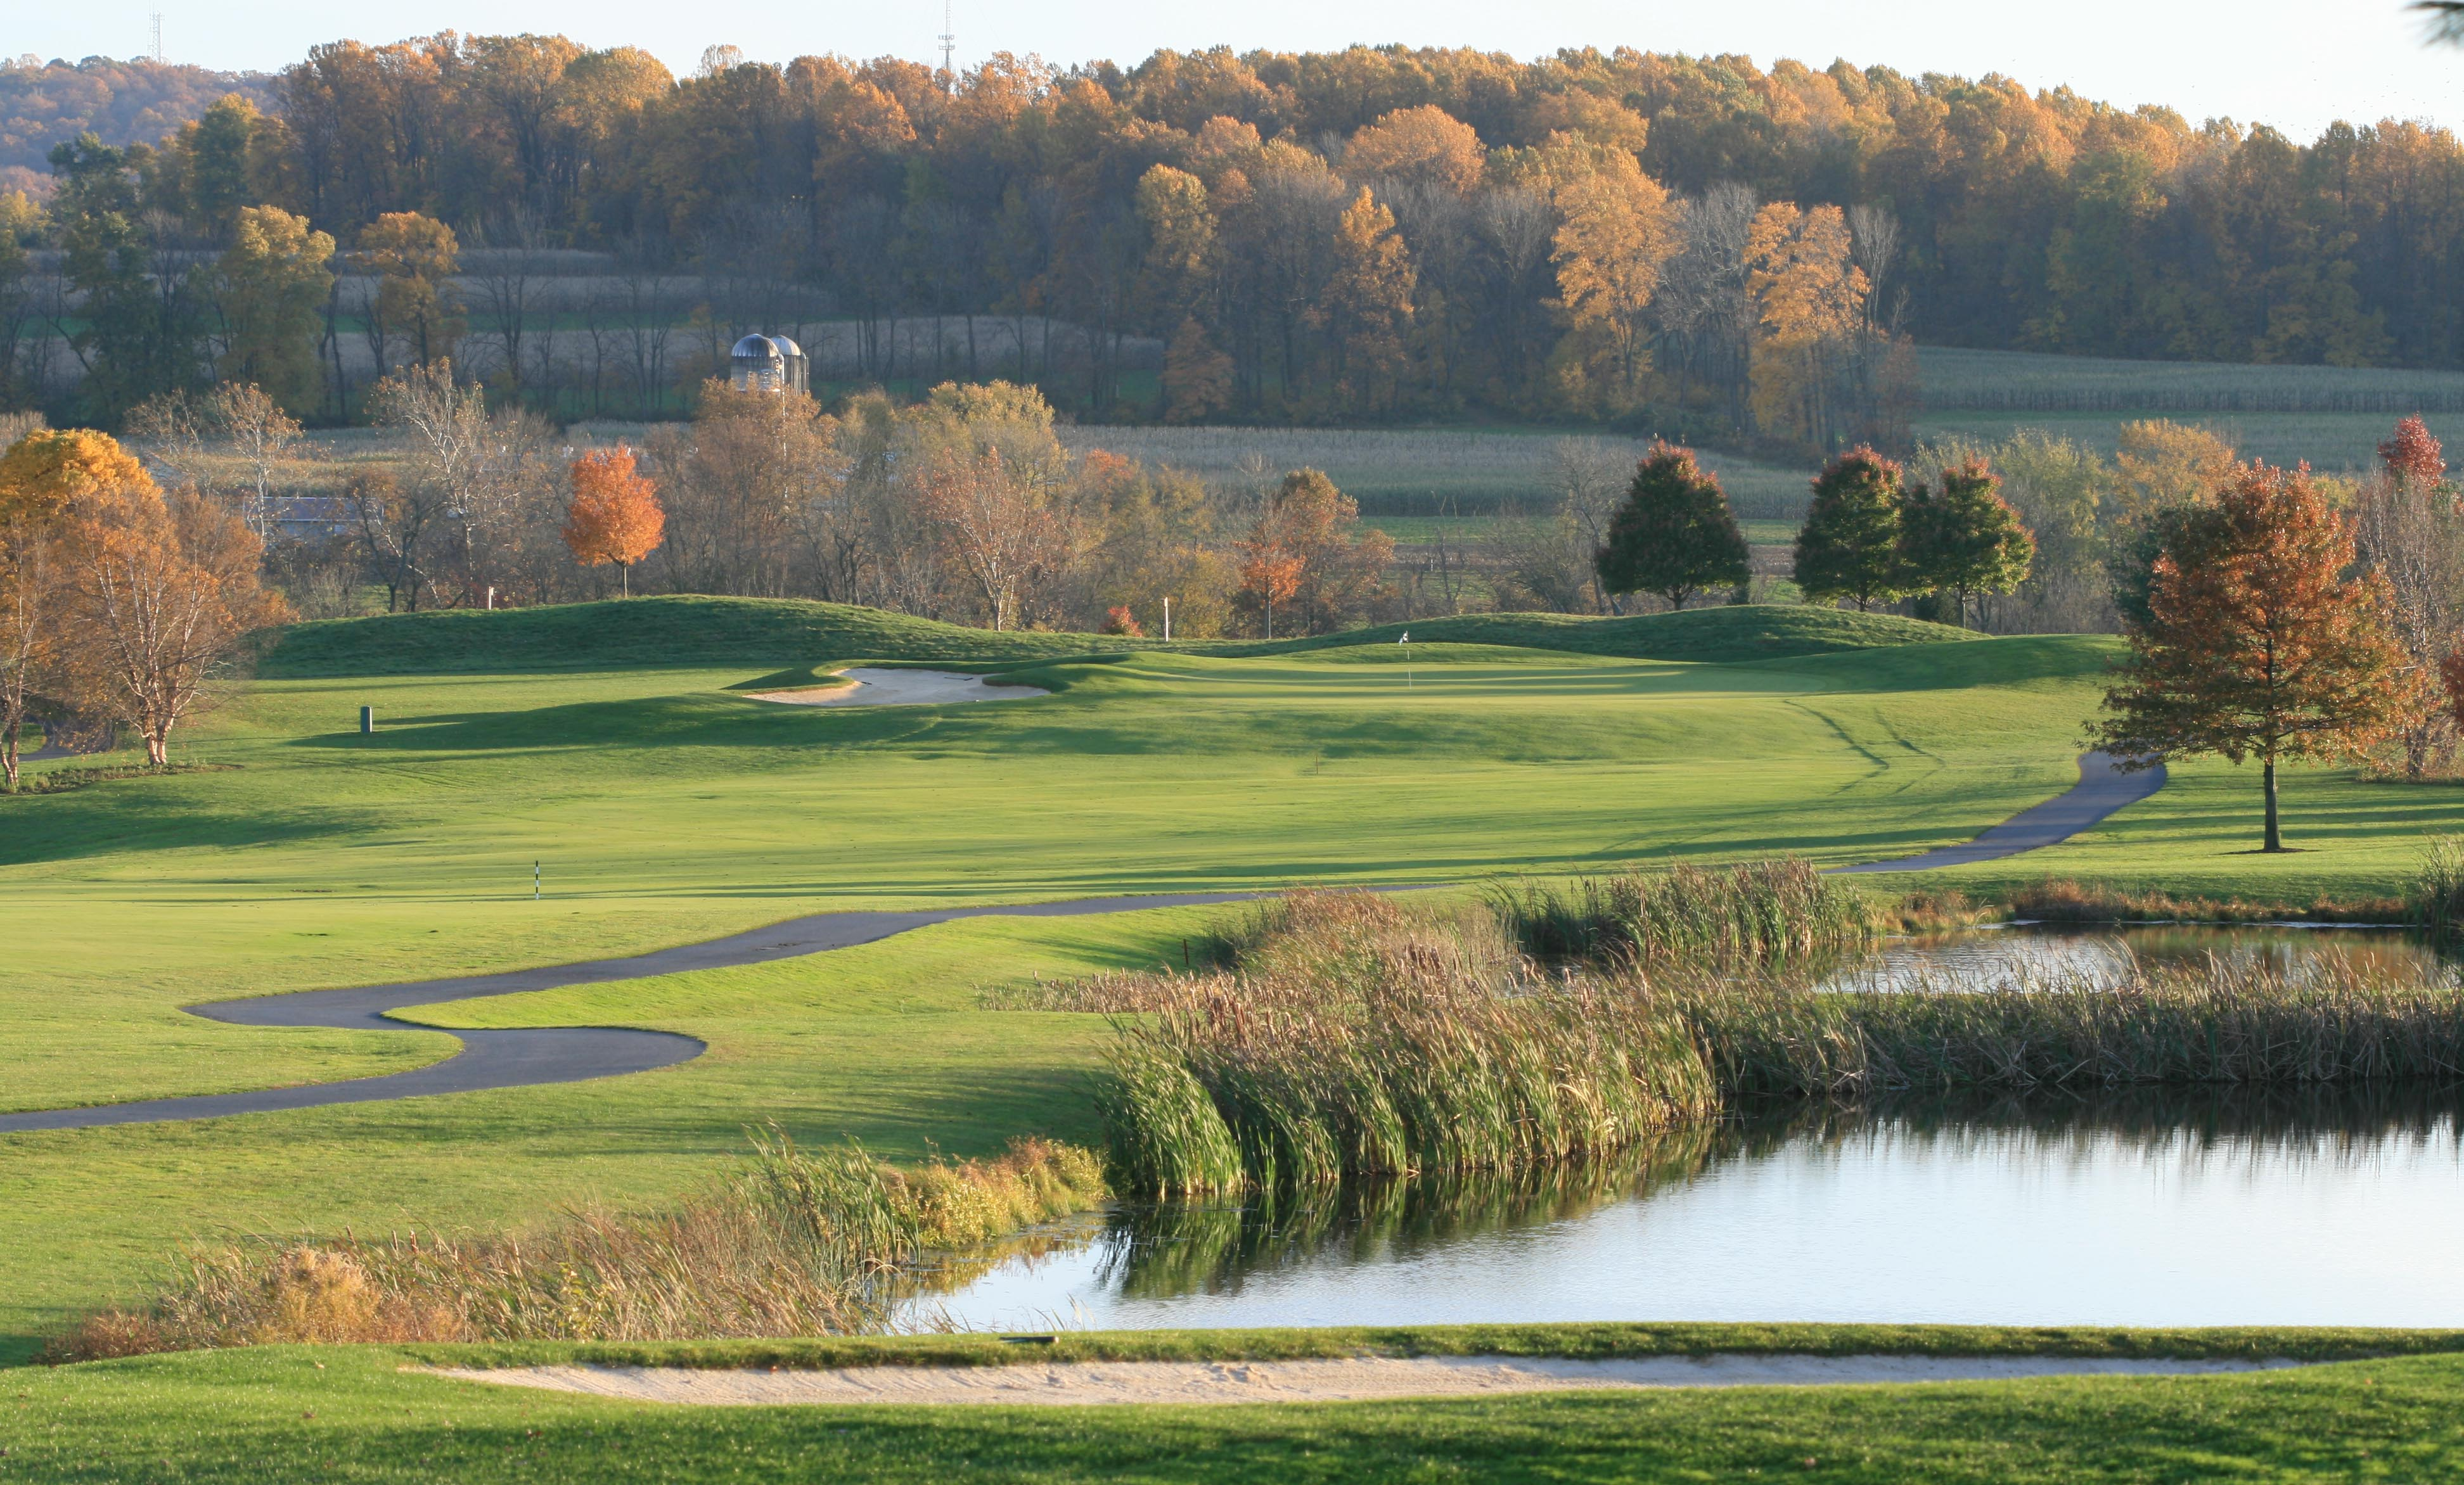 Golf Honey Brook Pennsylvania Local Golf Courses Near Me